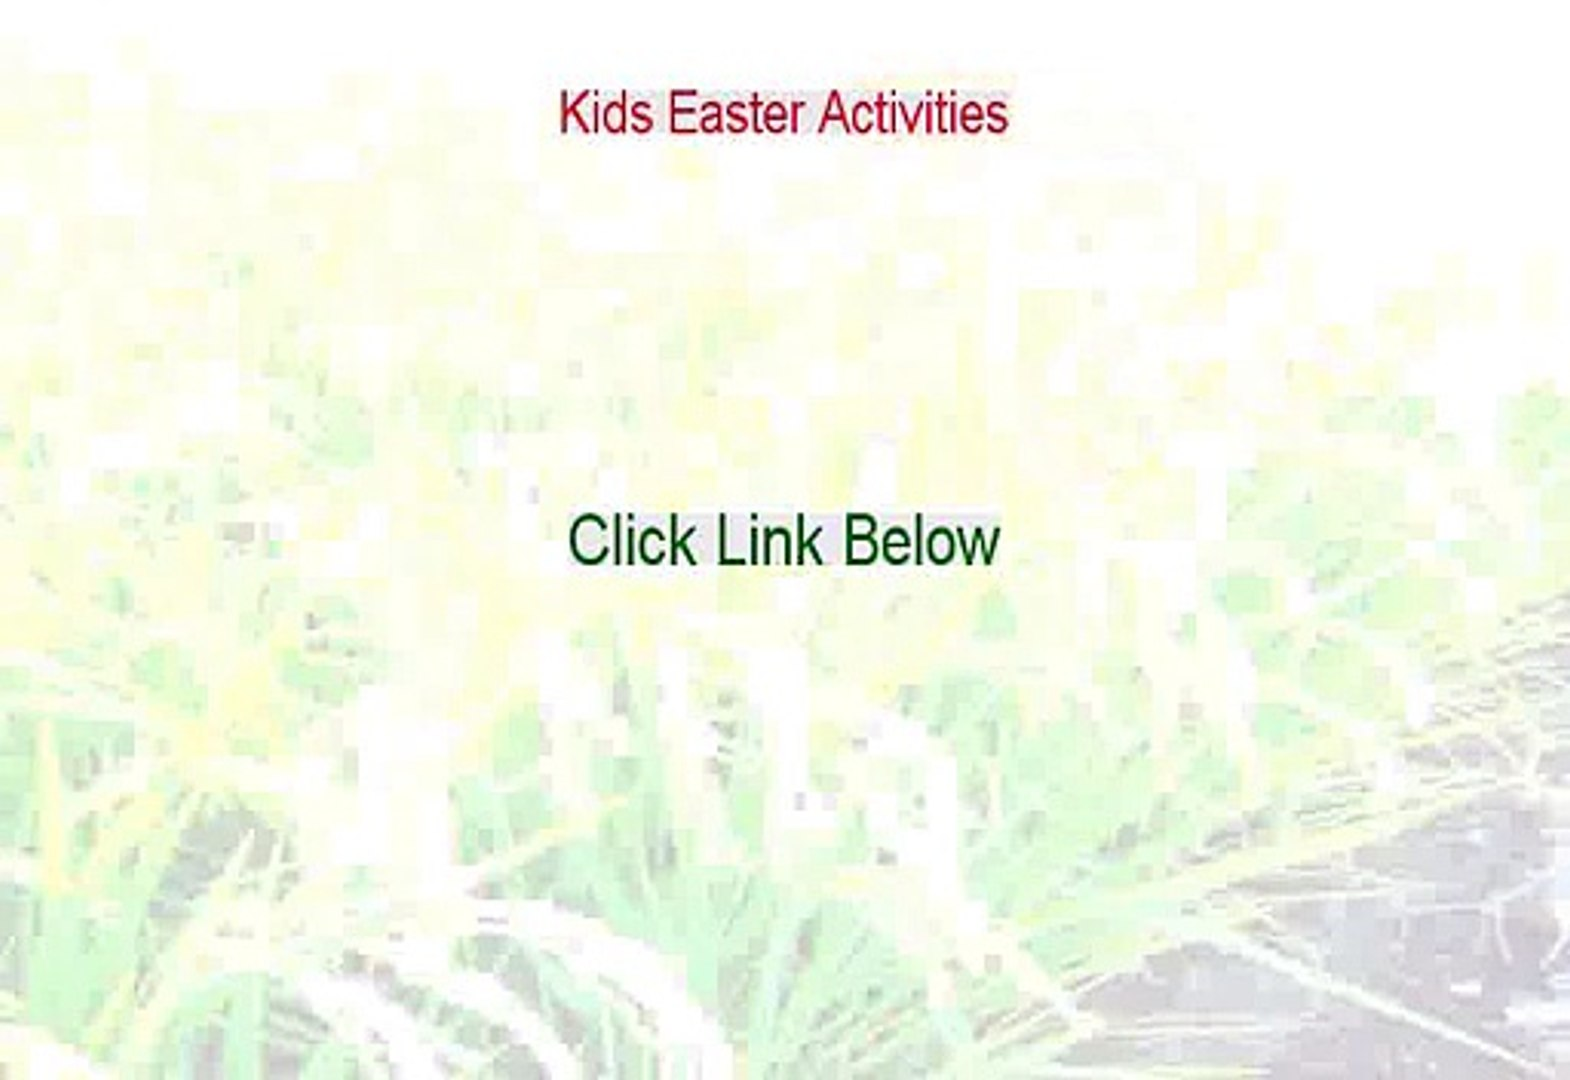 Kids Easter Activities Free Review - My Review (2015)